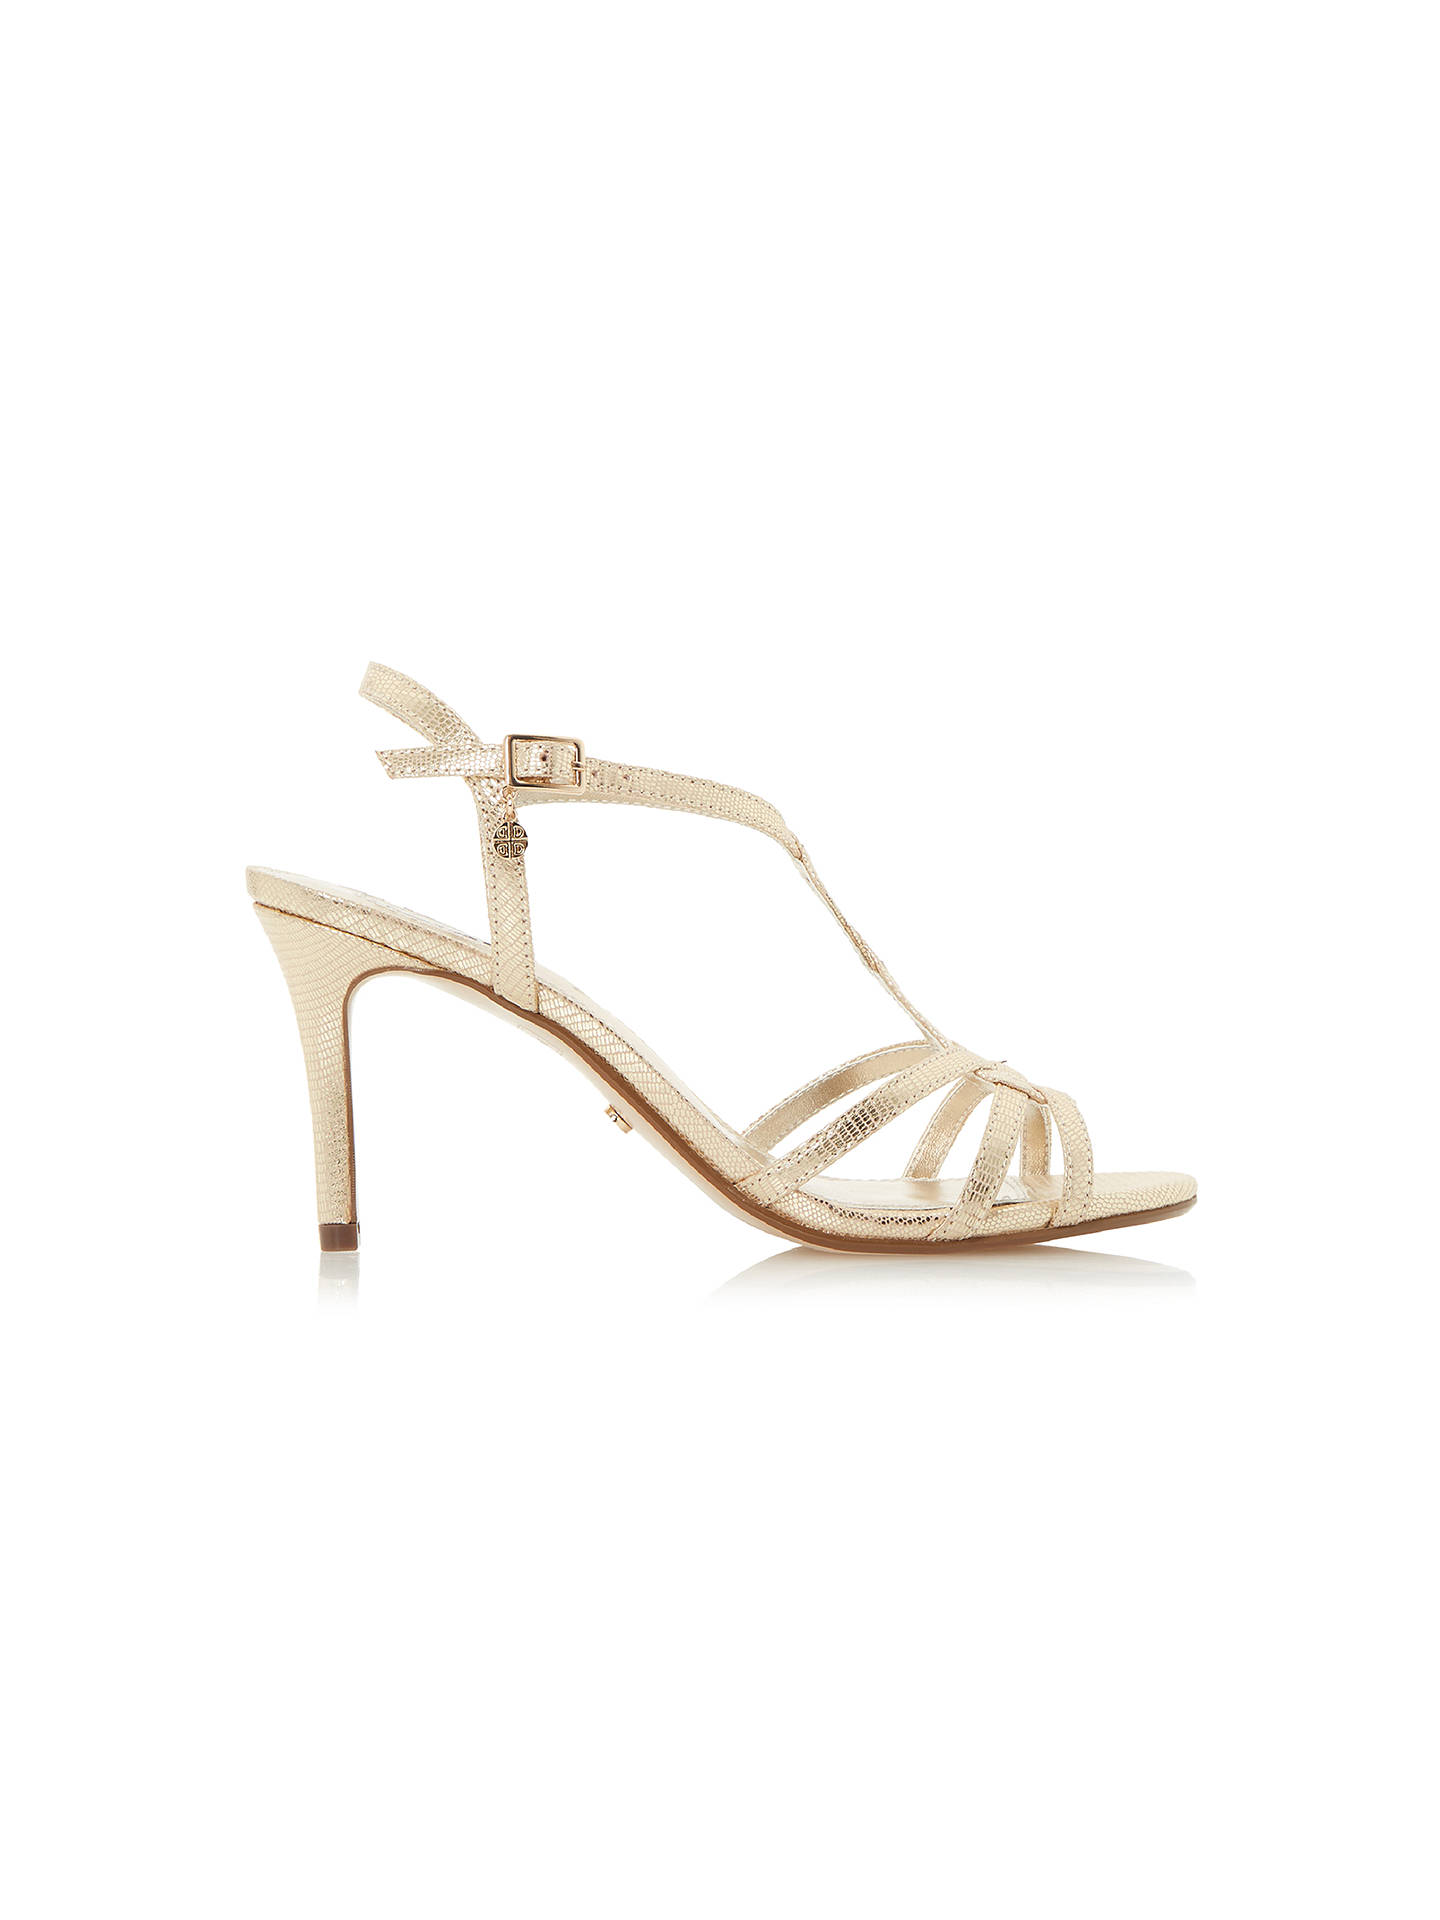 20a94823b2470 Buy Dune Miniee Strappy Stiletto Sandals, Gold, 3 Online at johnlewis.com  ...